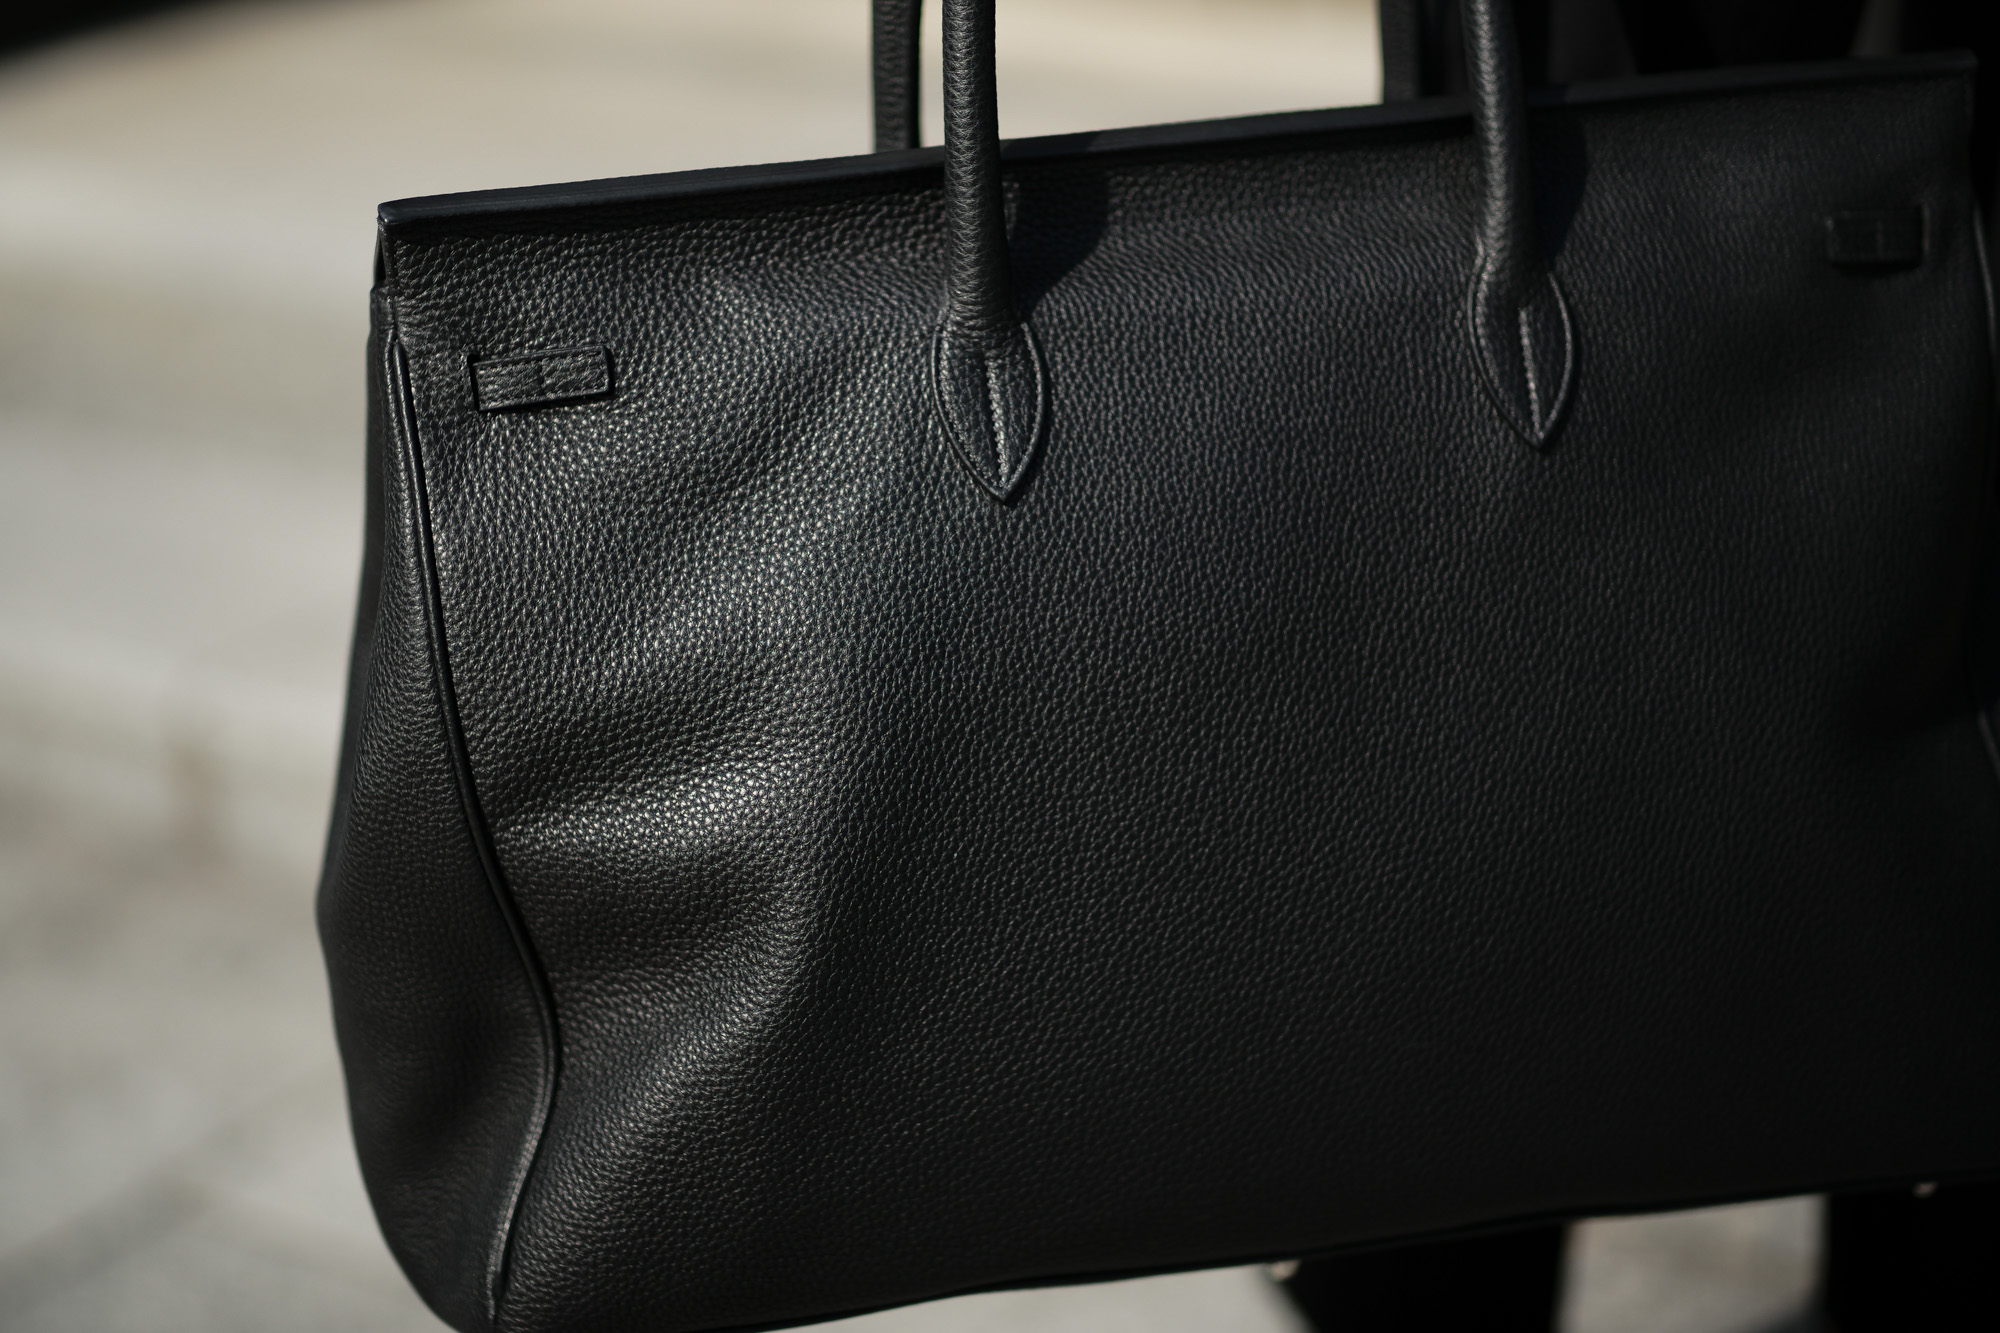 ACATE(アカーテ)OSTRO(オストロ) Montblanc leather(モンブランレザー) トートバック レザーバック NERO(ネロ) MADE IN ITALY(イタリア製) 2019 秋冬新作 愛知 名古屋 altoediritto アルトエデリット